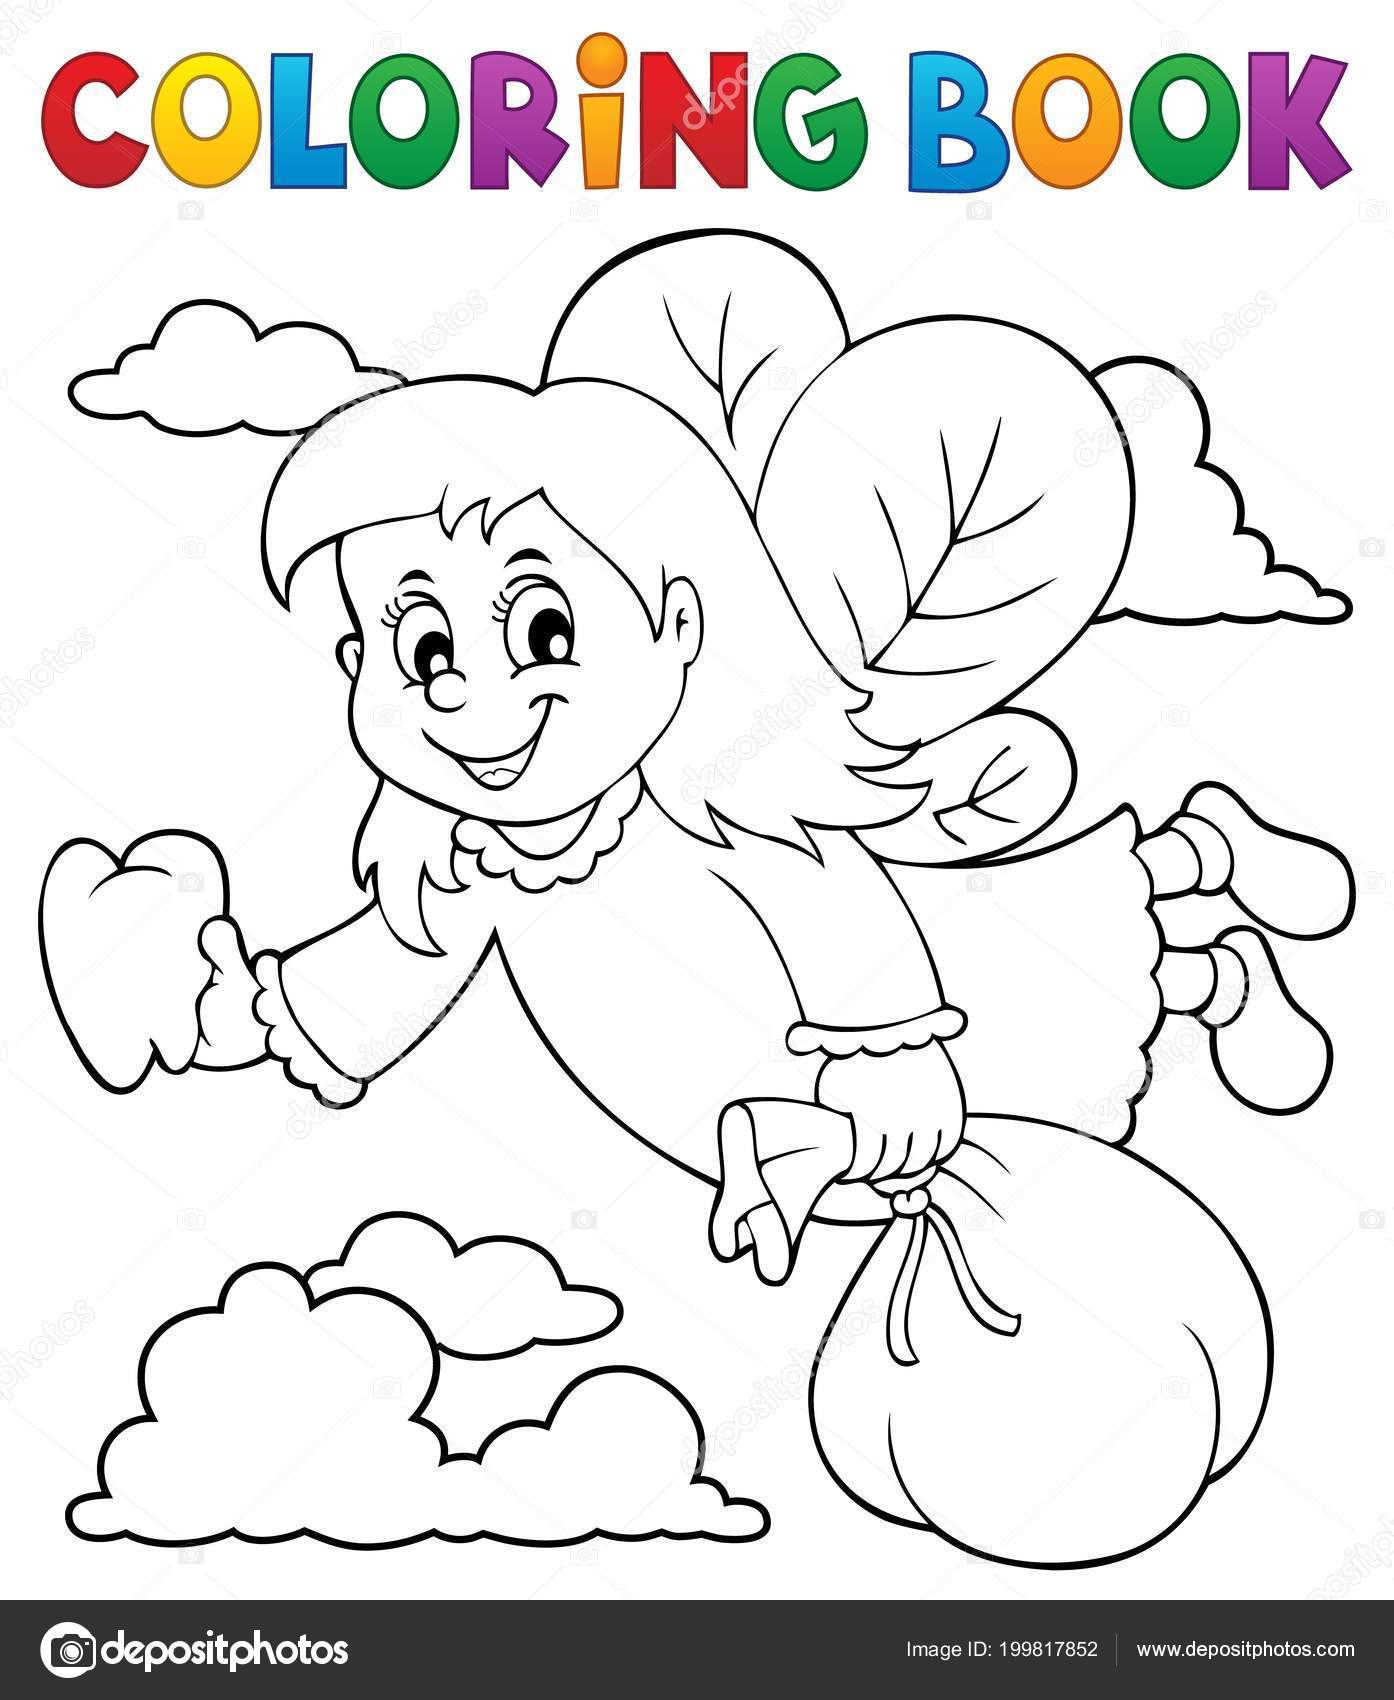 Coloring Book Tooth Fairy Theme Eps10 Vector Illustration Stock